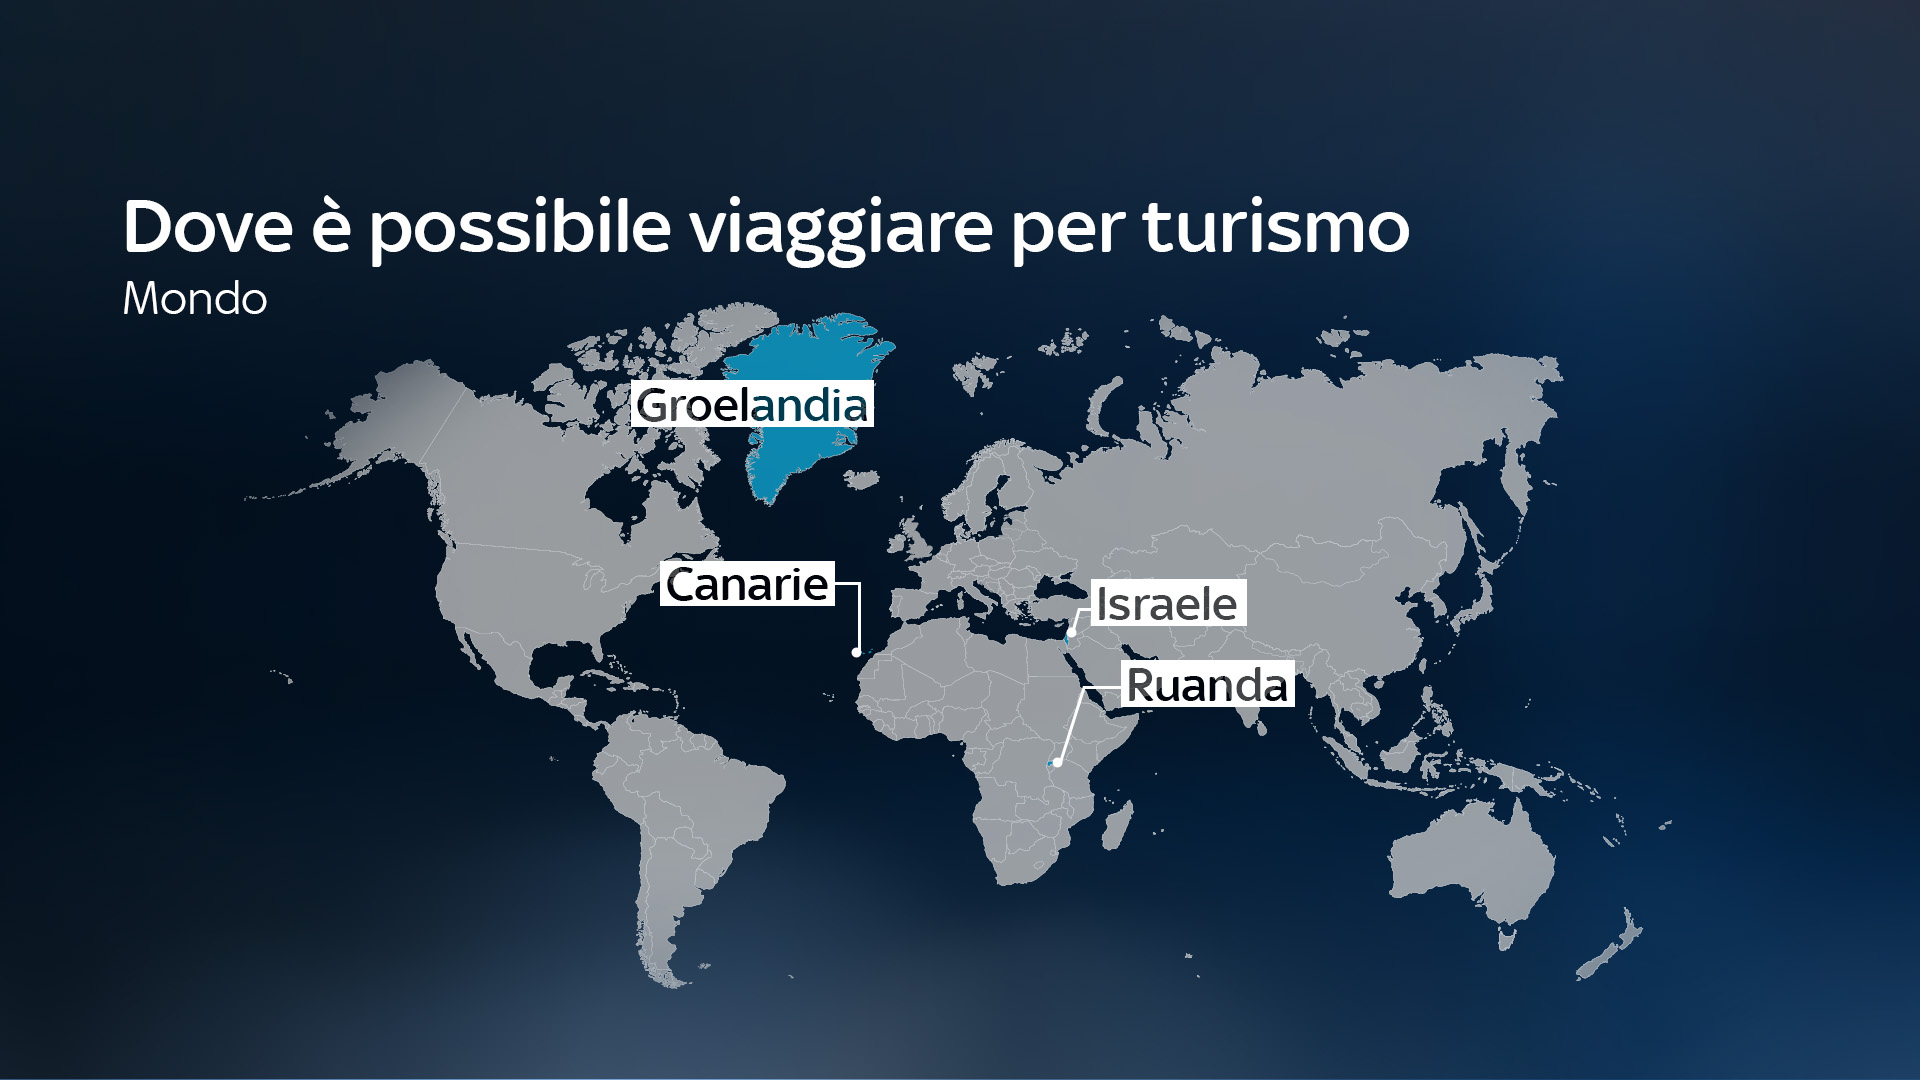 In the picture is a map of the world with the countries that can be visited for tourism